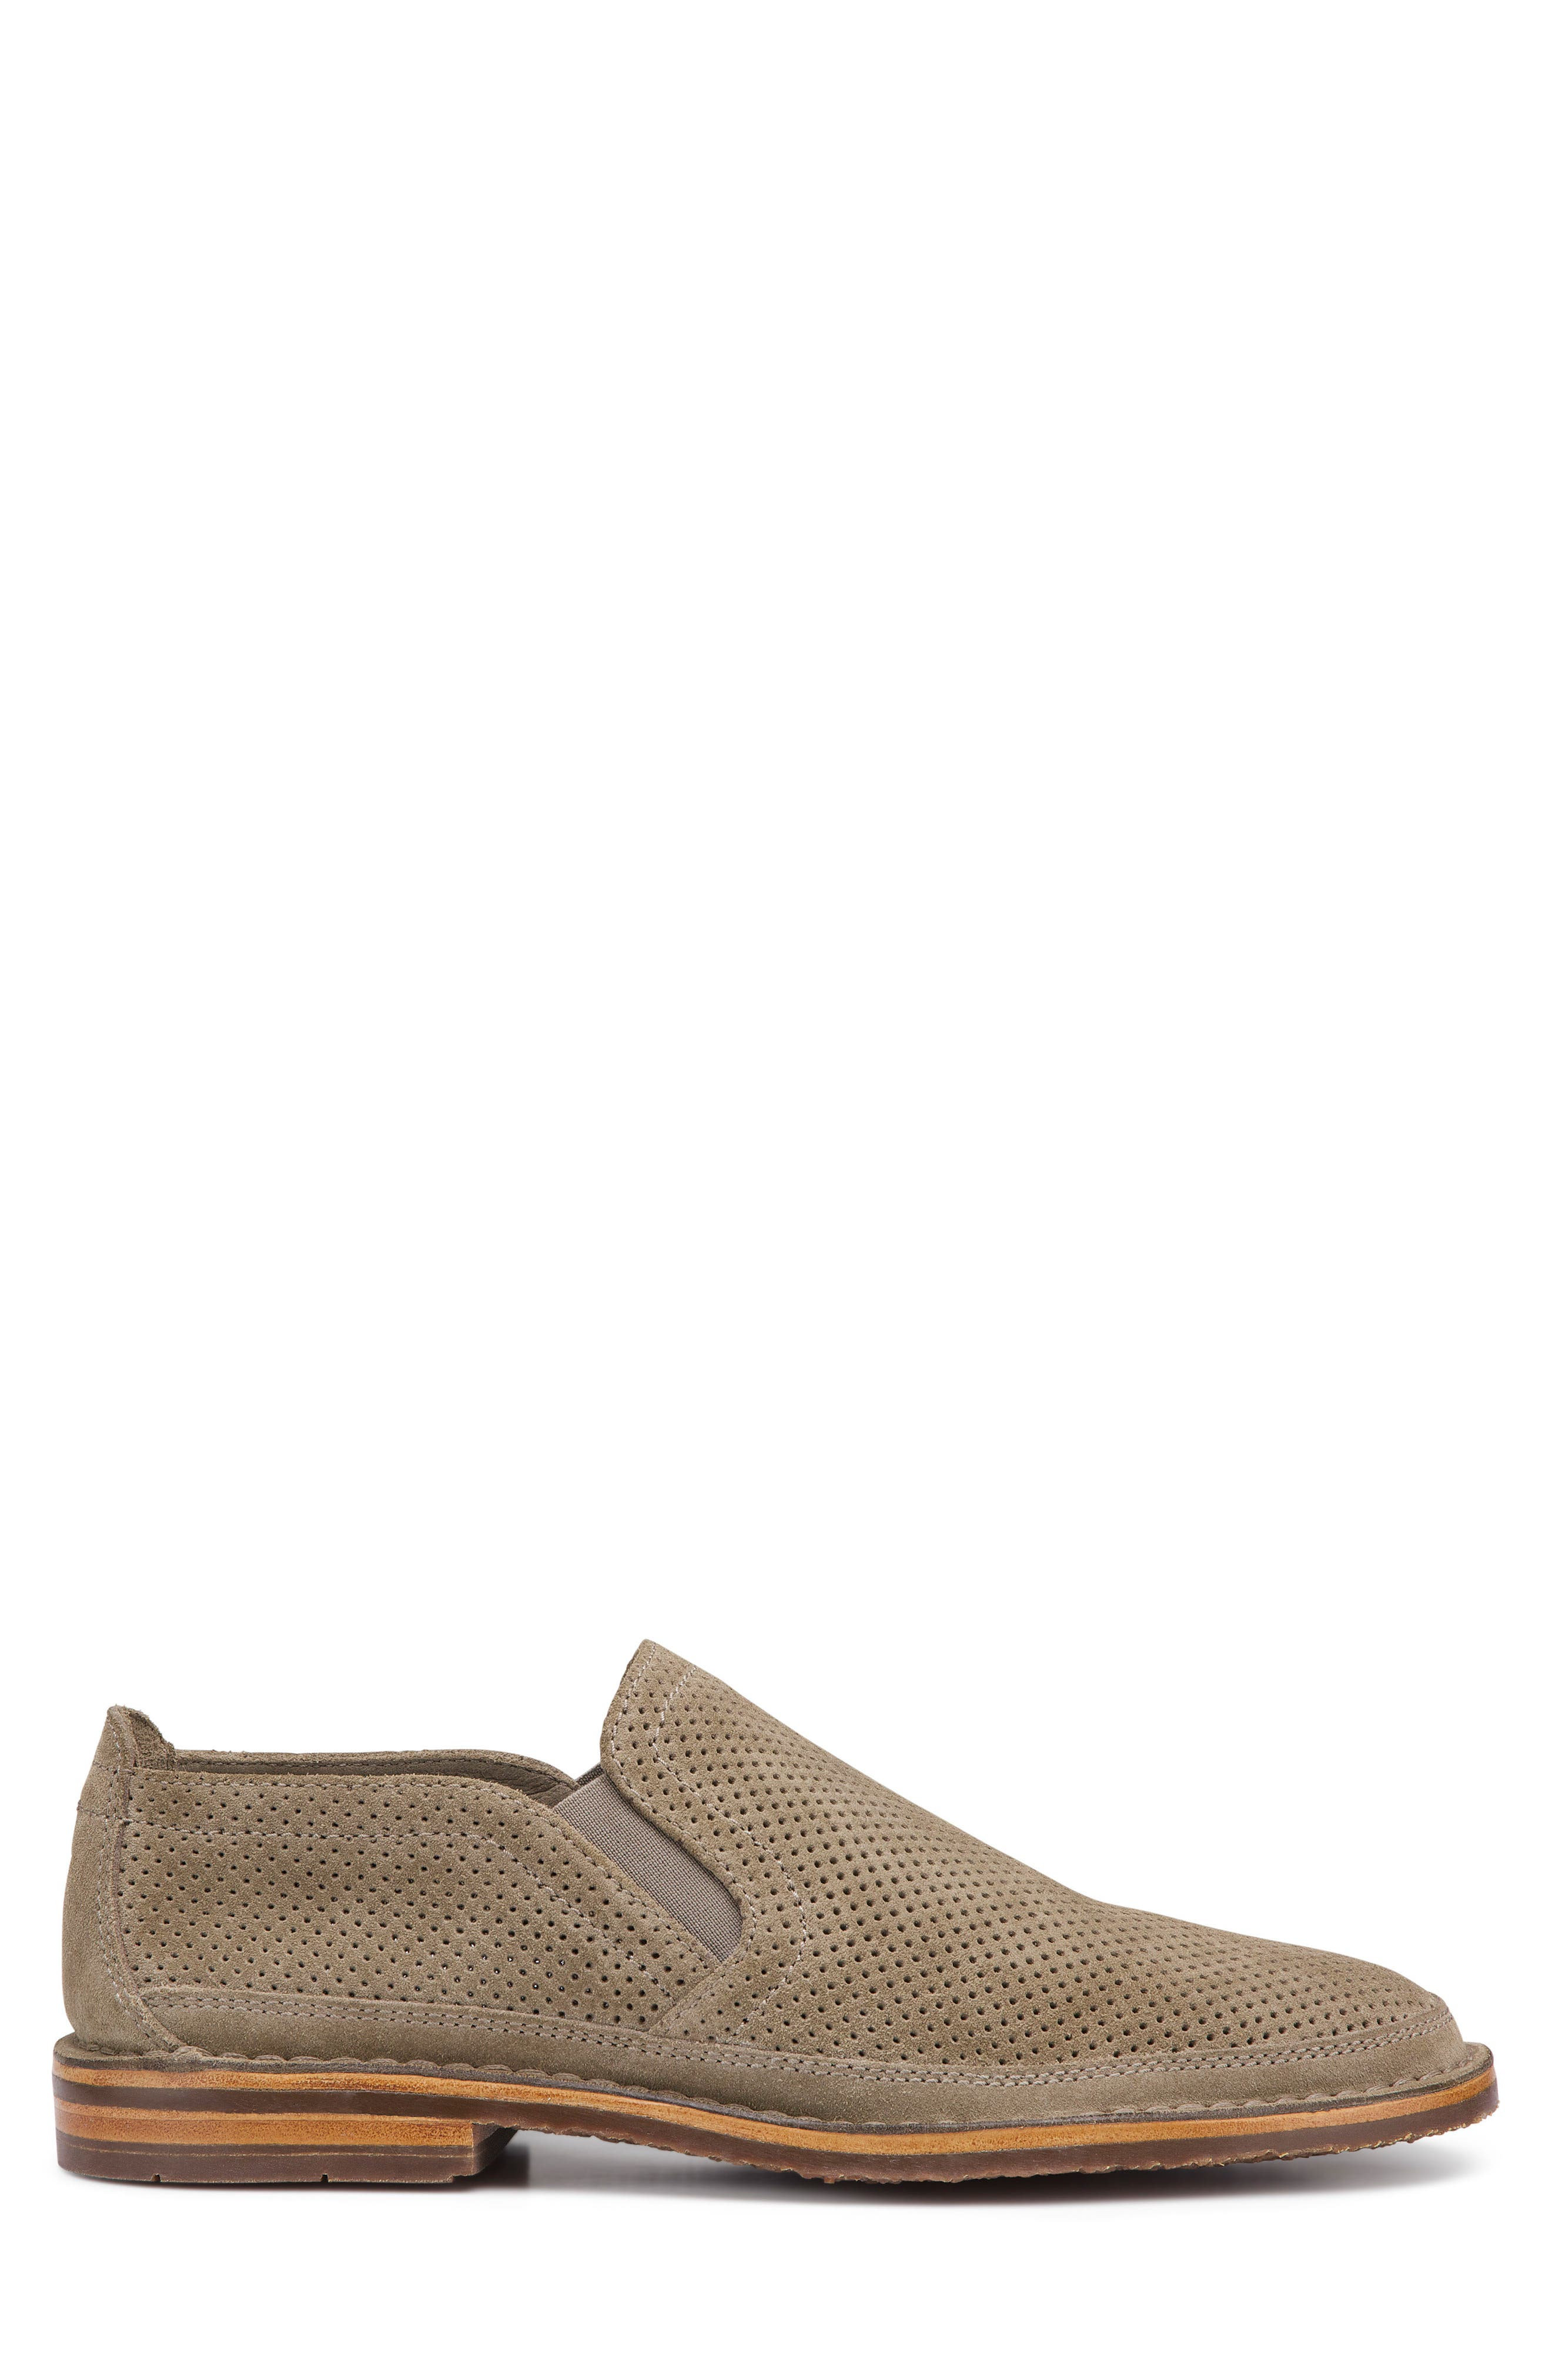 TRASK, Bradley Perforated Slip-On, Alternate thumbnail 3, color, TAUPE SUEDE